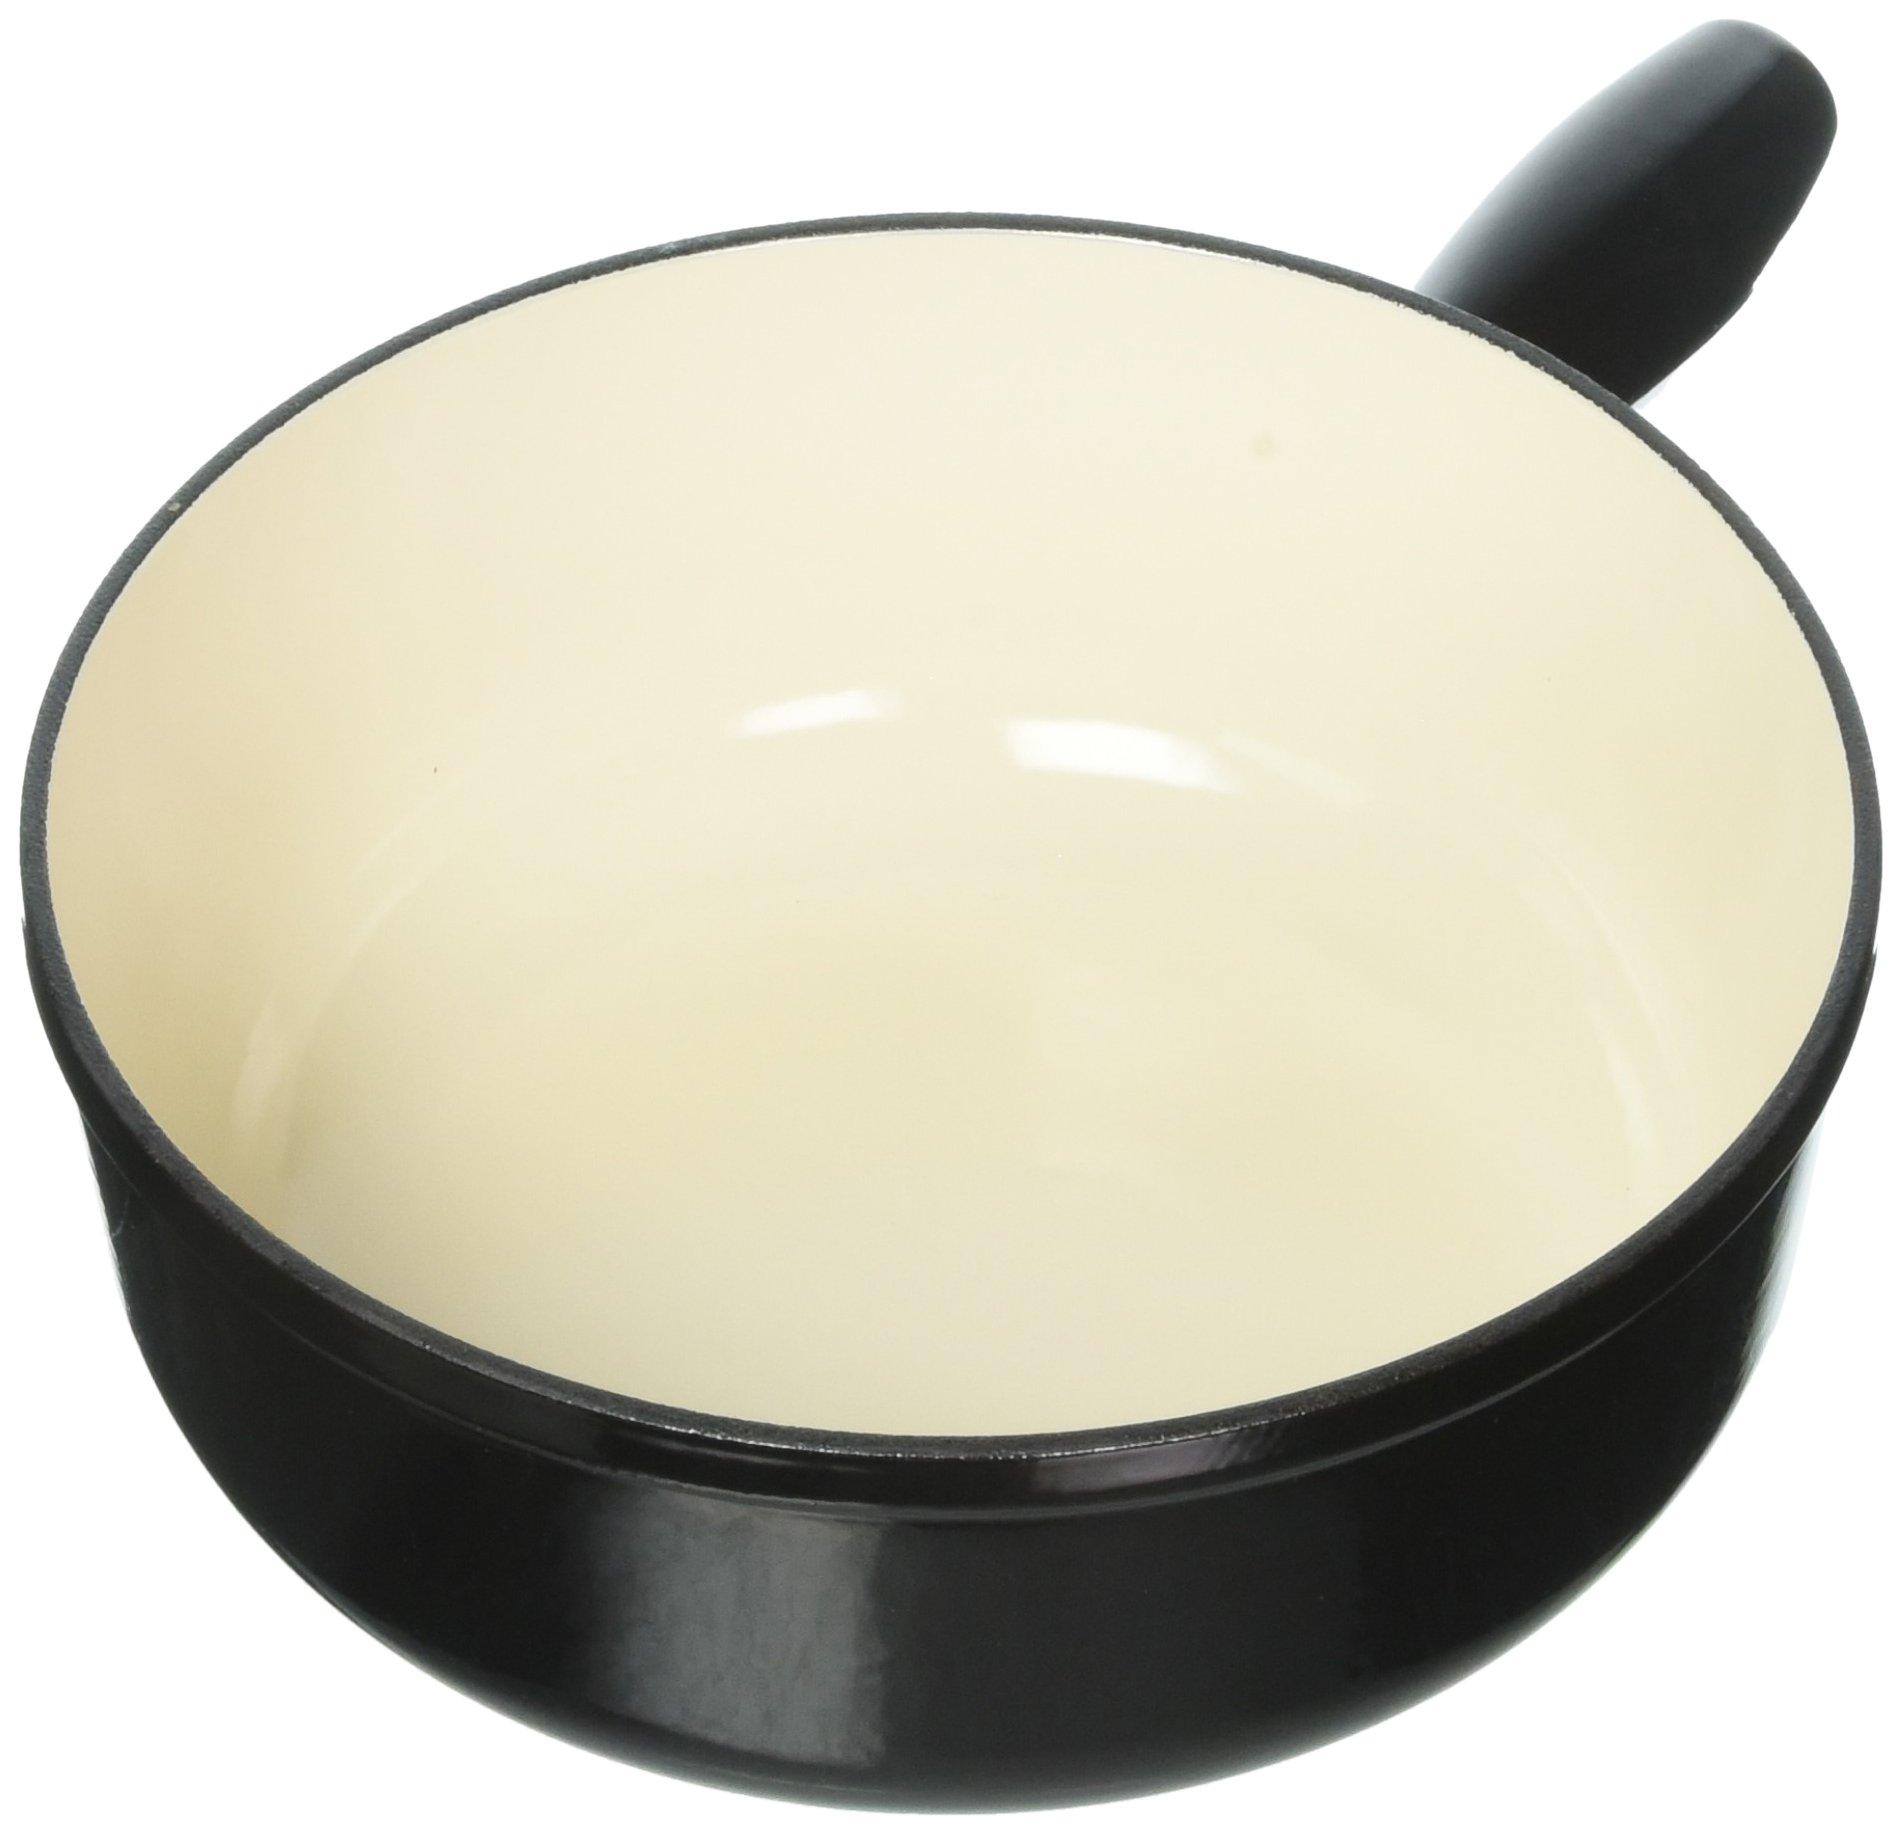 Kuhn Rikon Induction of Cast Iron Fondue Pot, 9.45'', Black by Kuhn Rikon (Image #1)